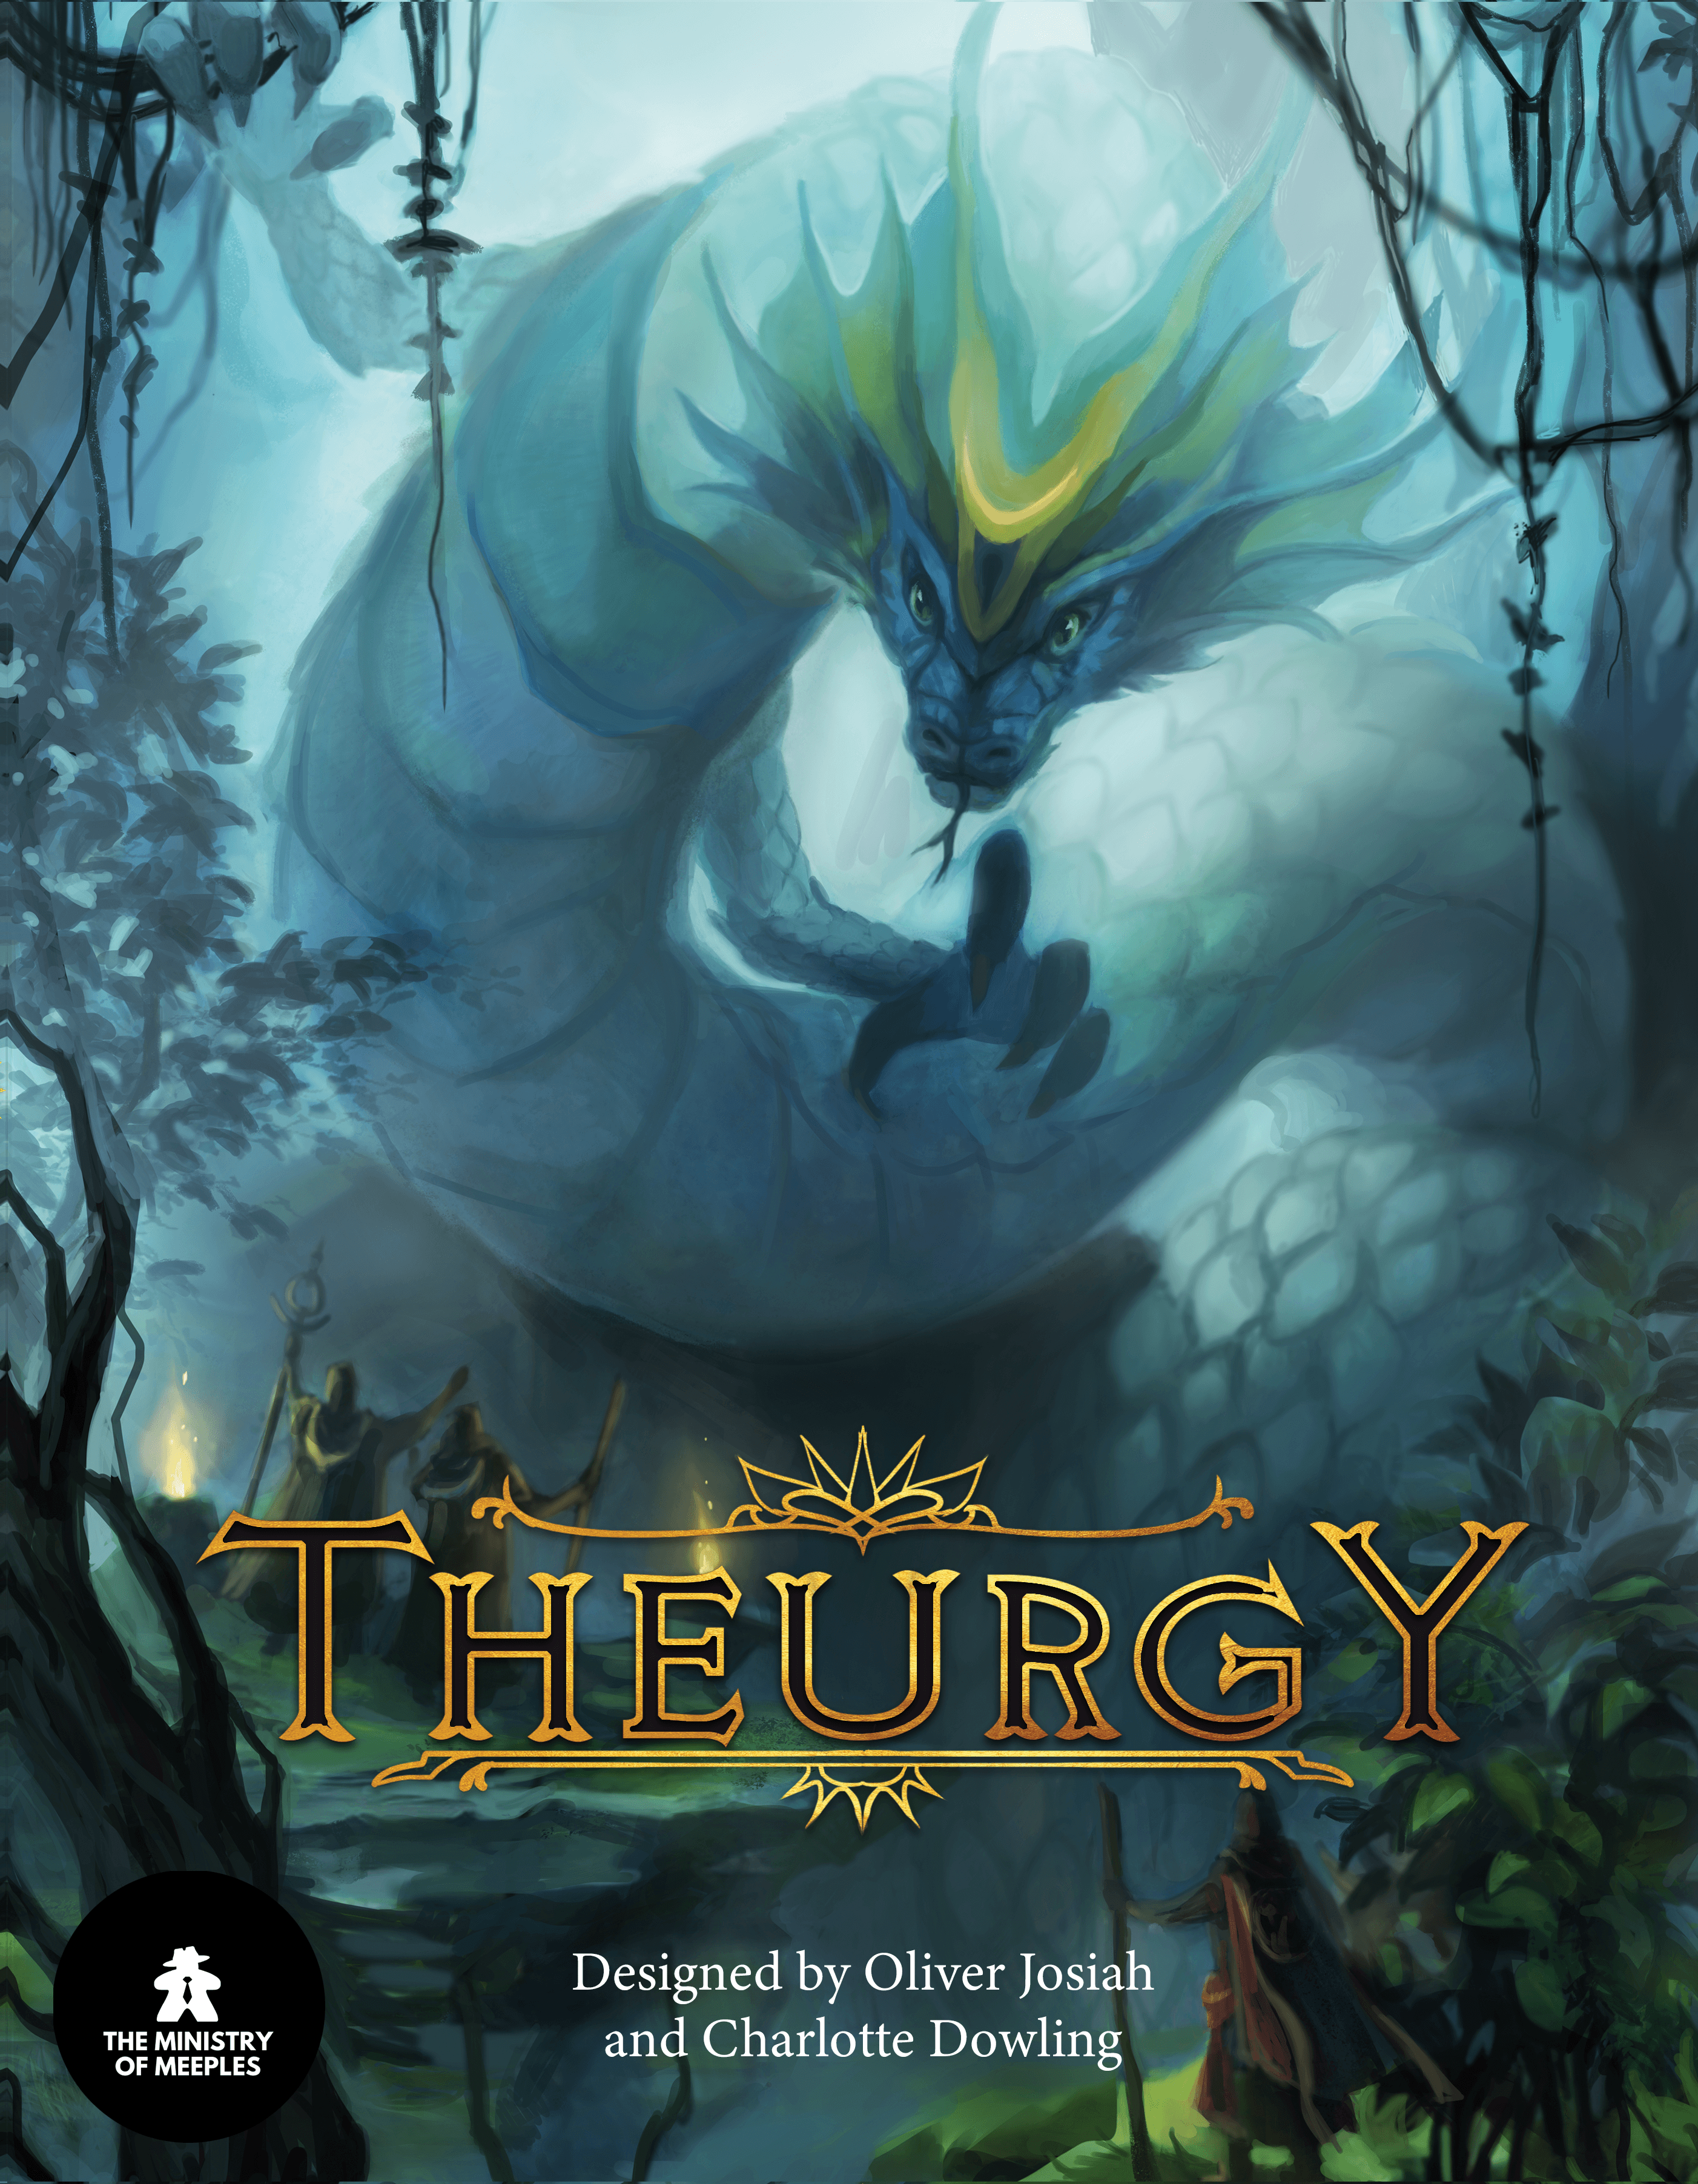 Theurgy